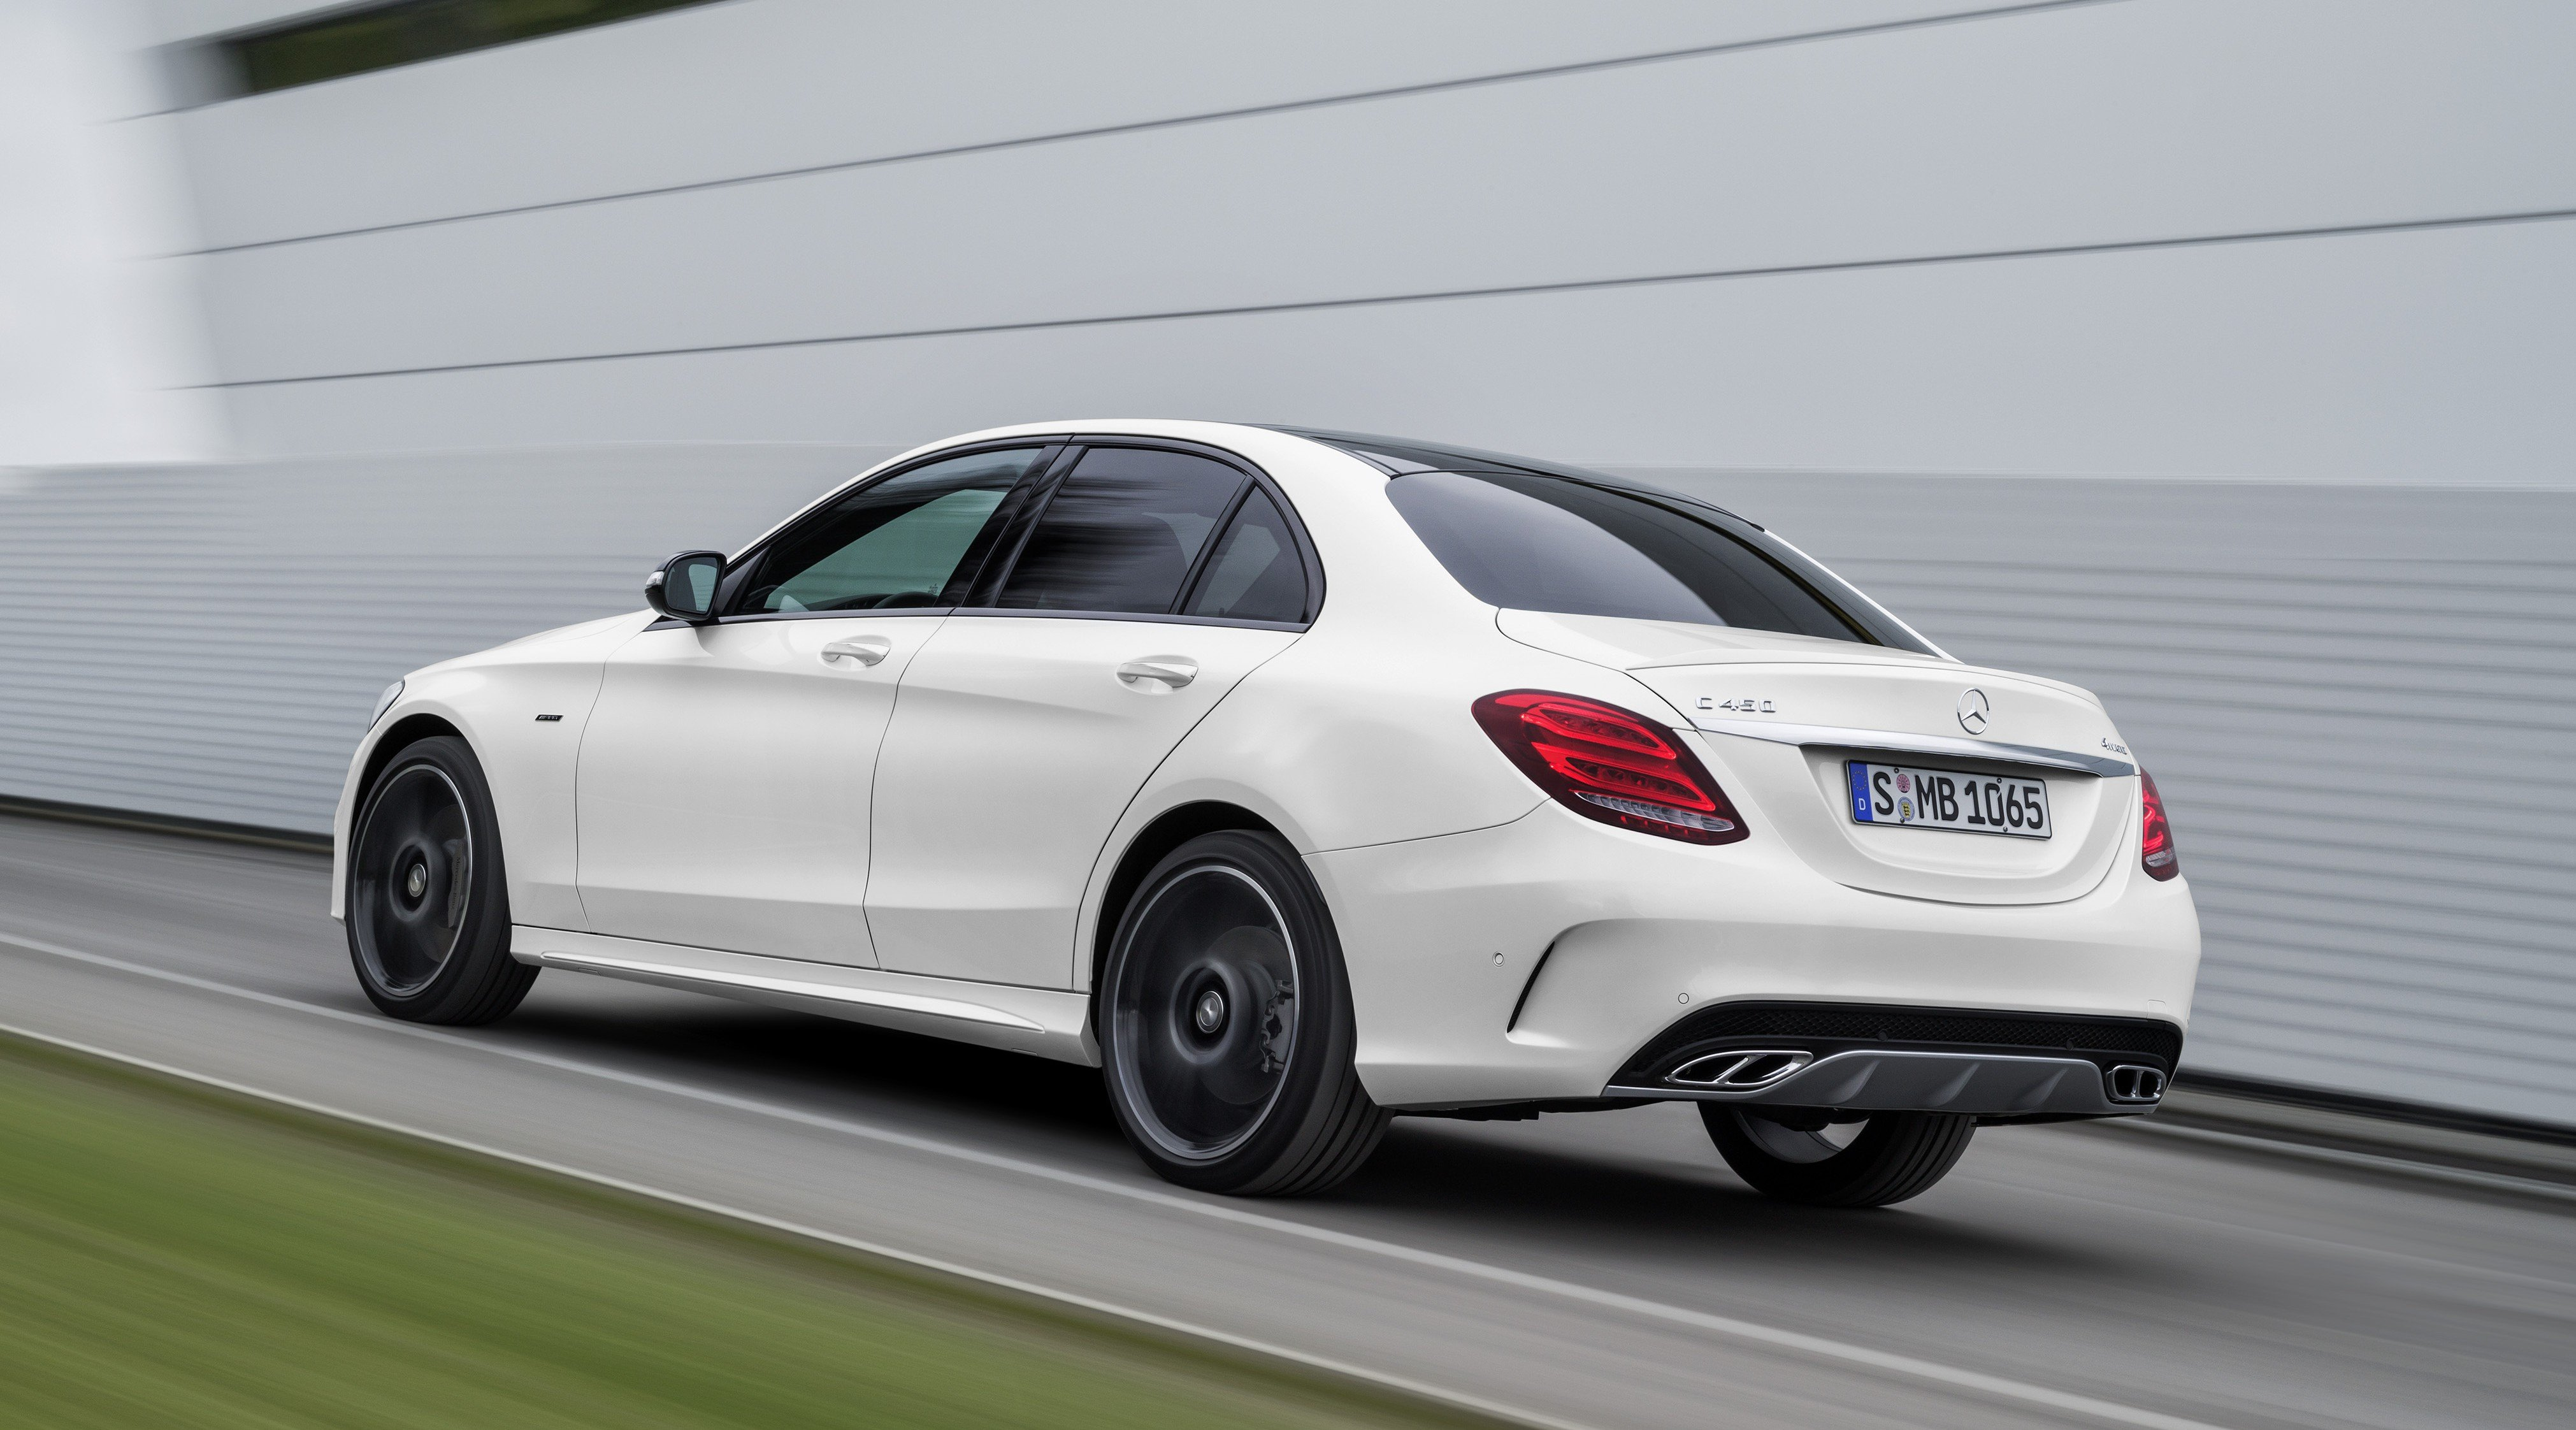 Mercedes benz c450 amg revealed sub c63 range opener for Mercedes benz c450 amg